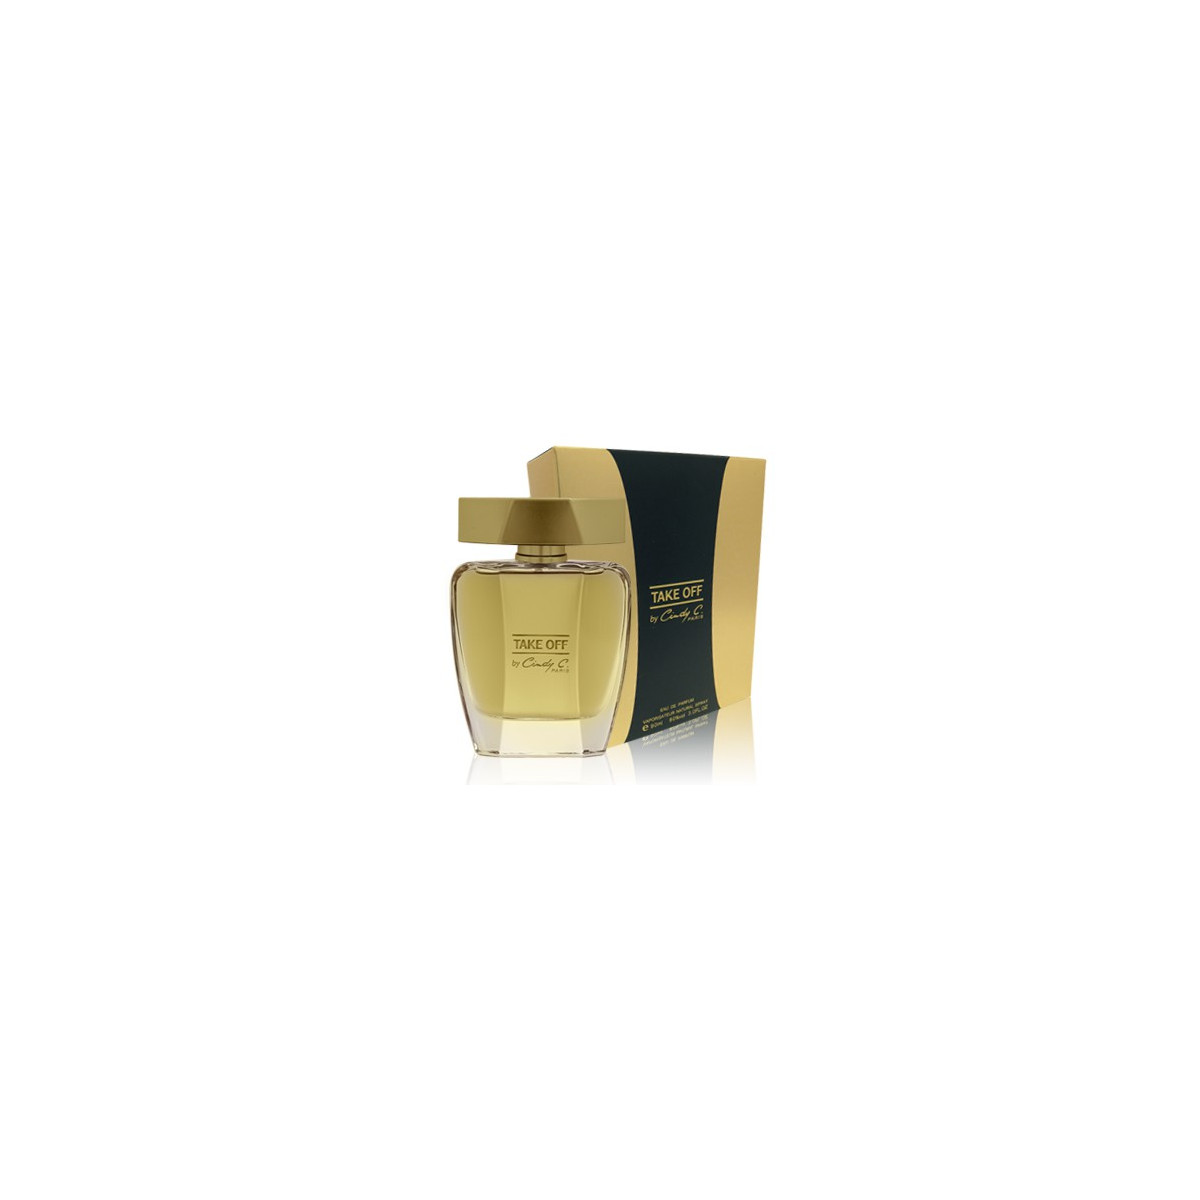 Take Off - Eau de parfum de Cindy C.